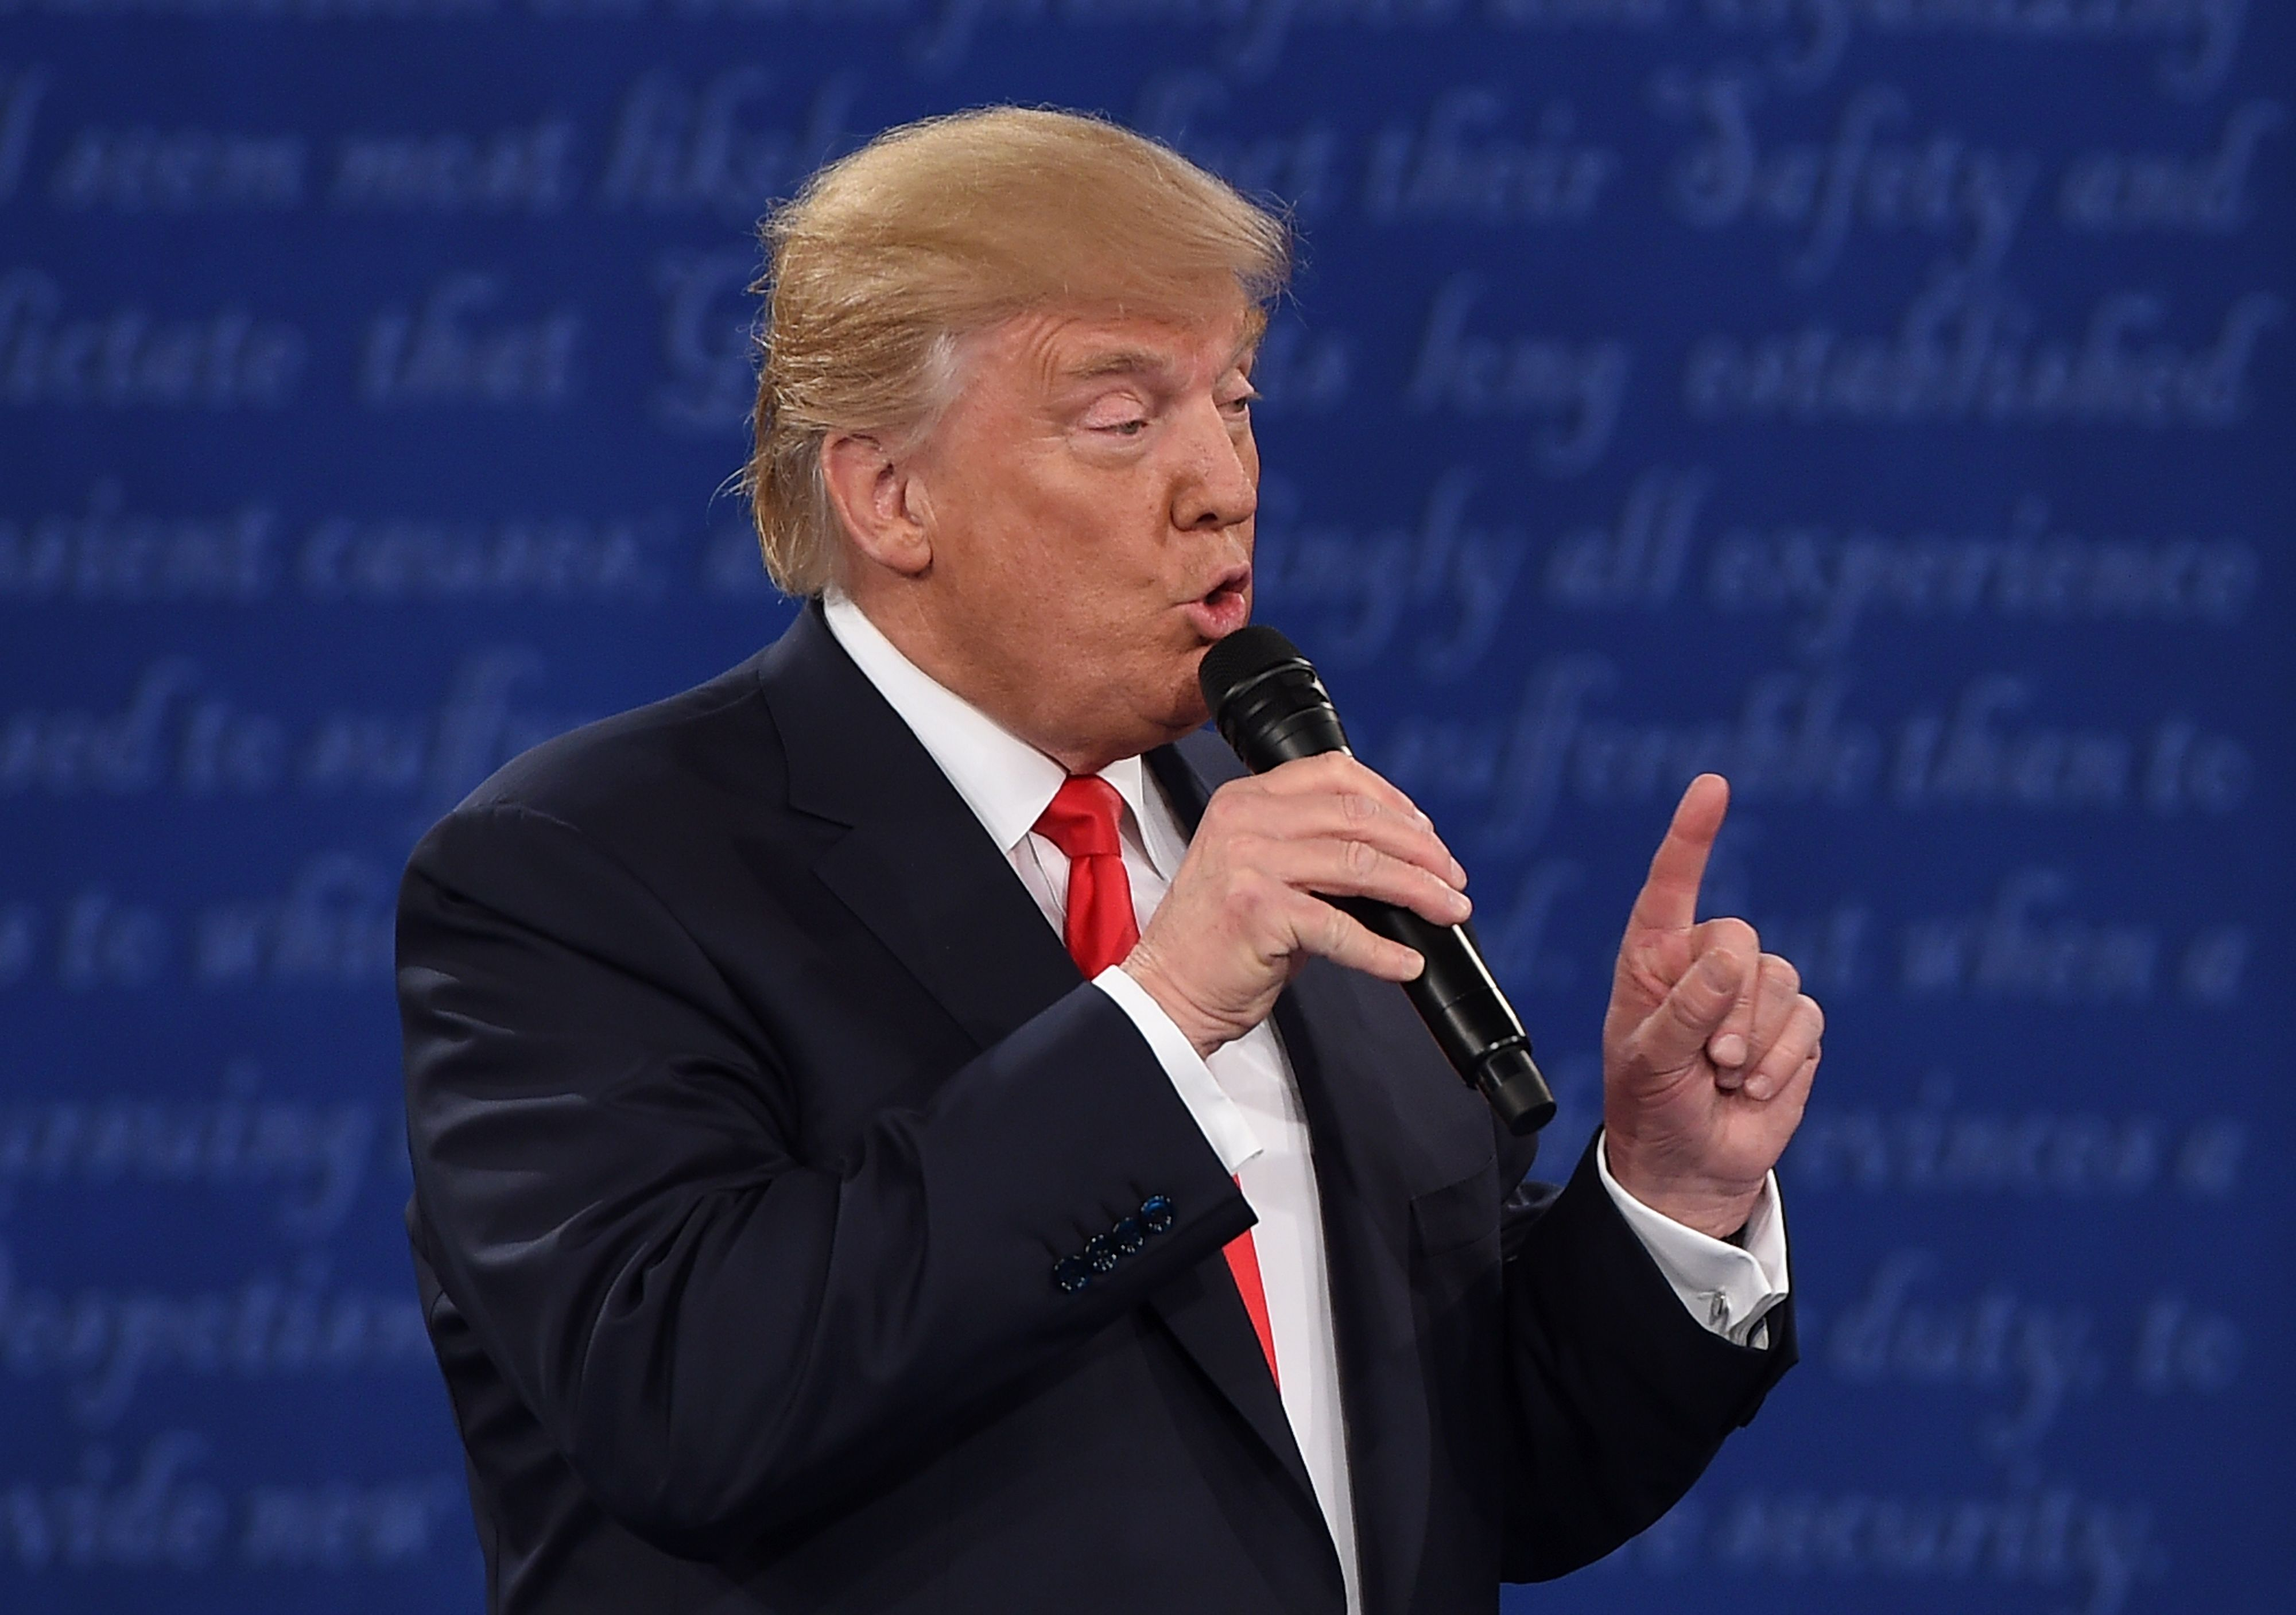 Republican presidential candidate Donald Trump speaks during the second presidential debate at Washington University in St. Louis on Oct. 9, 2016